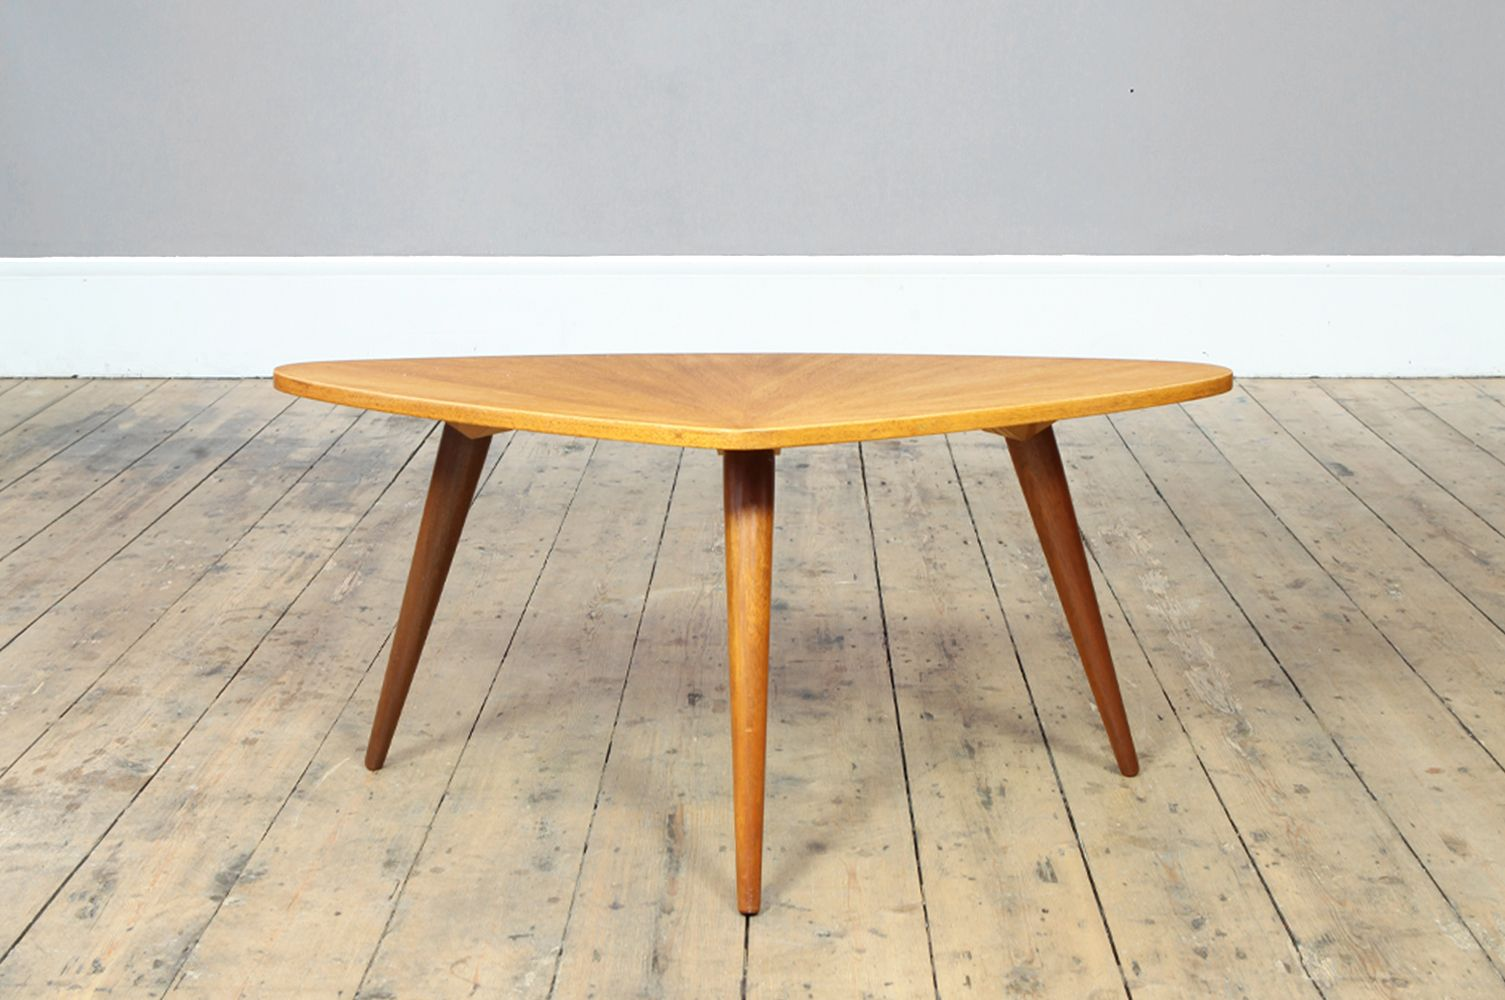 Tapered Coffee Table Legs Dutch Coffee Table With Tapered Legs 1960s For Sale At Pamono